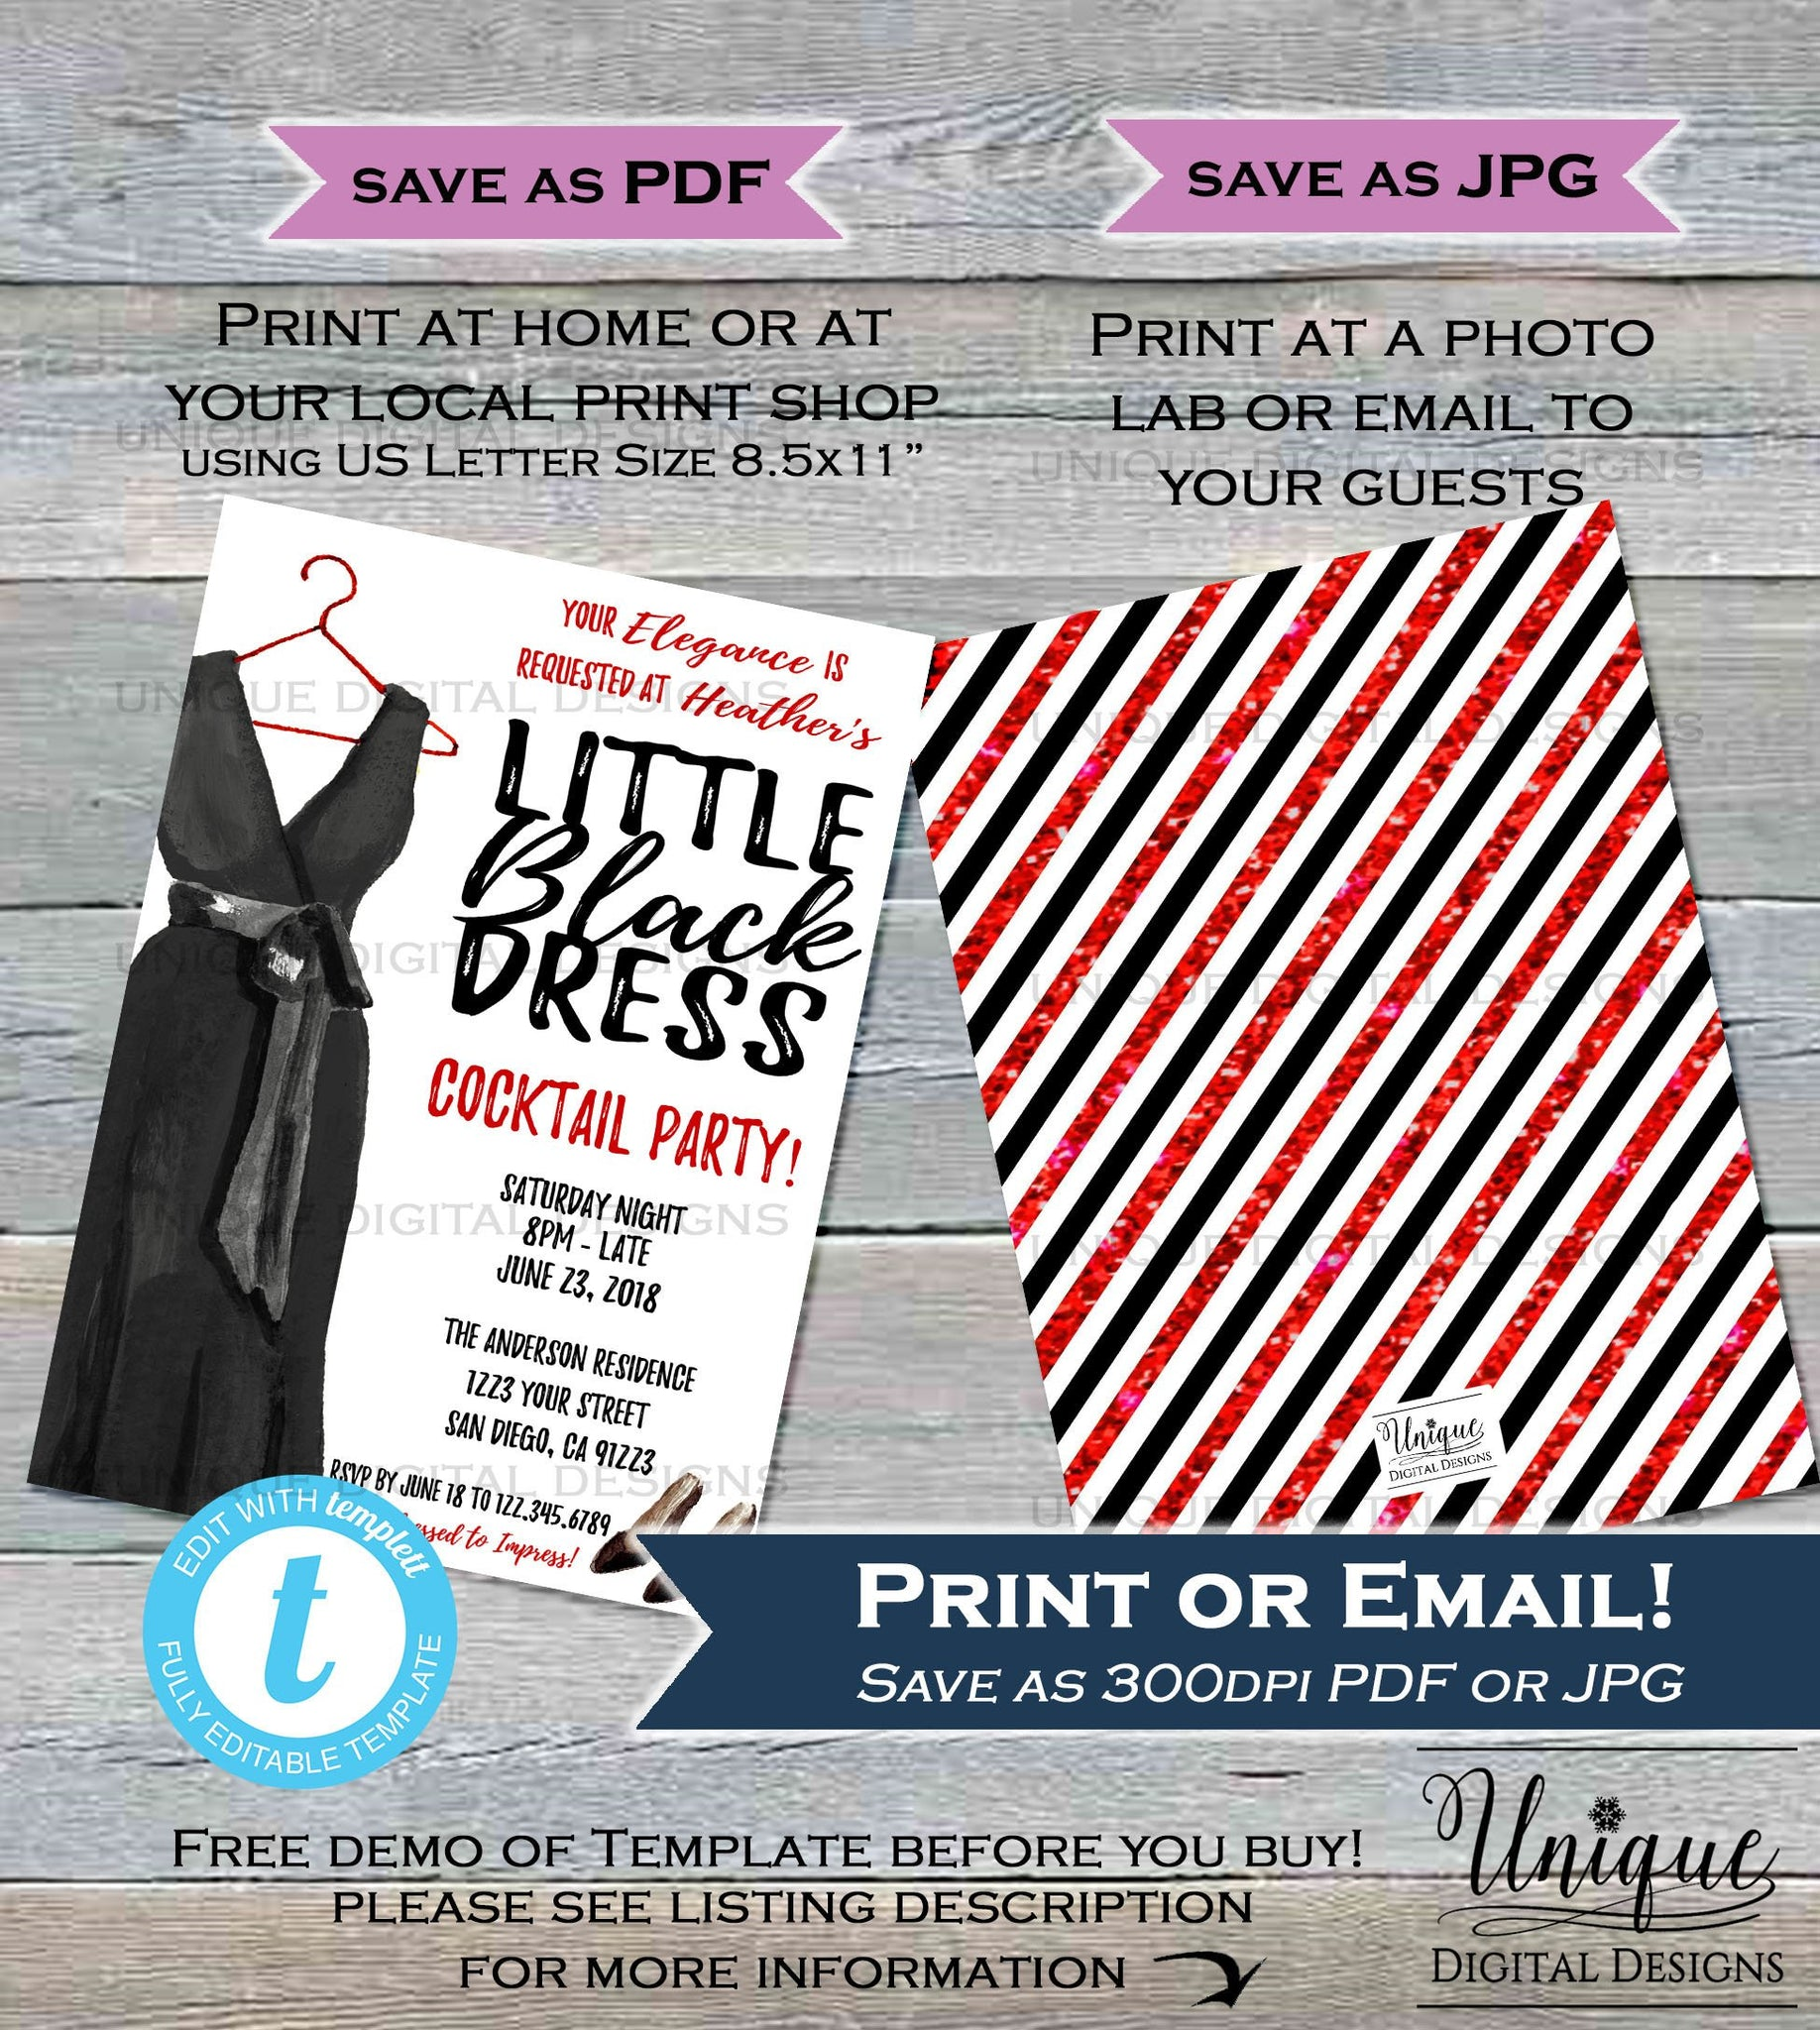 ... Little Black Dress Invitation Cocktail Party Invite Girls Night Out Dress to Impress Ladies Wine ...